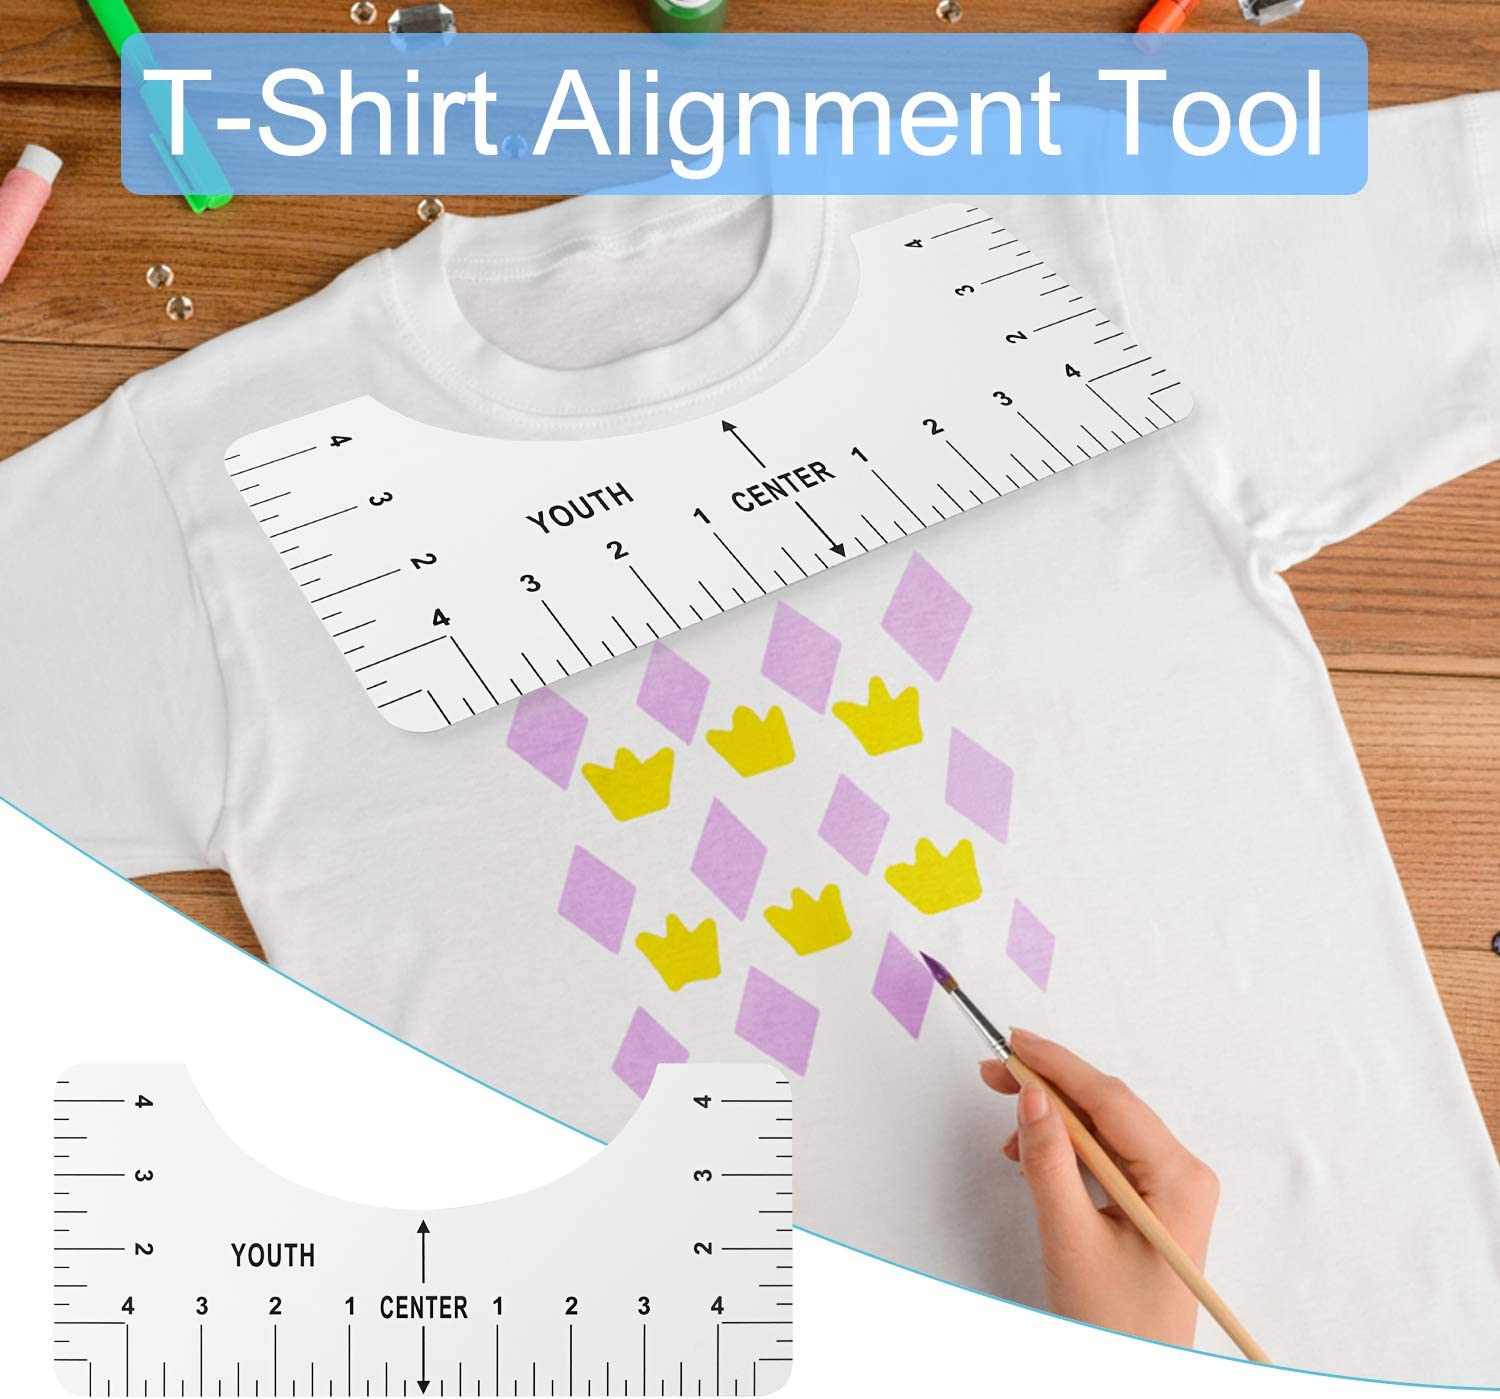 Adult Youth Toddler Infant 6 Pieces T-Shirt Ruler T-Shirt Alignment Tool T-Shirt Vinyl Guide 10/×2.5,10/×3.5,10/×4.5,10/×5,10/×6,16/×5,Inch Craft Ruler with Guide Tool for Making Fashion Center Design